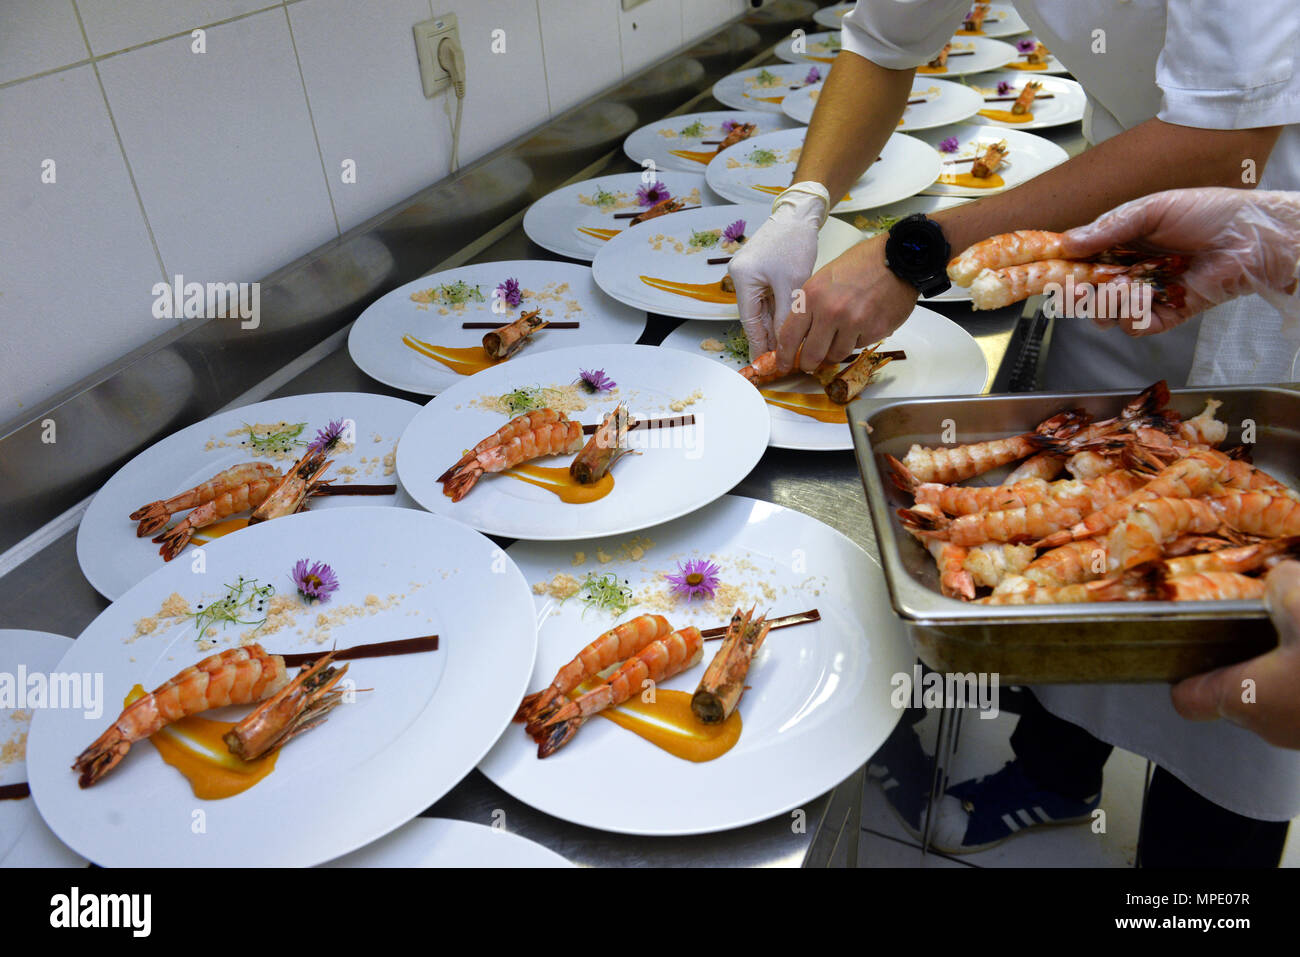 srimps on a white plate on restaurant kitchen - Stock Image